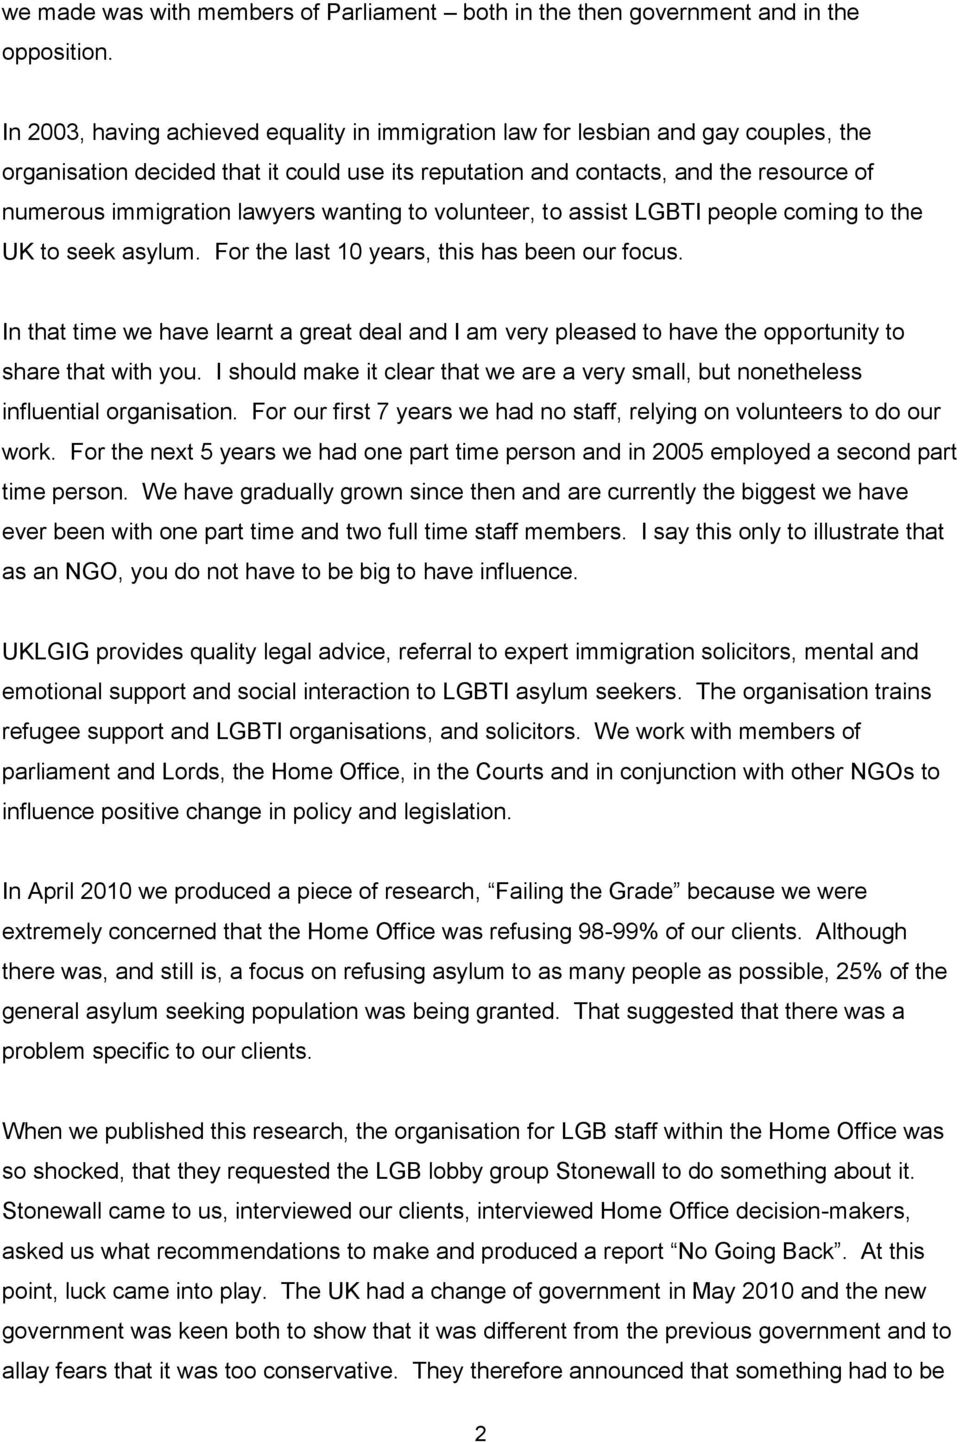 lawyers wanting to volunteer, to assist LGBTI people coming to the UK to seek asylum. For the last 10 years, this has been our focus.